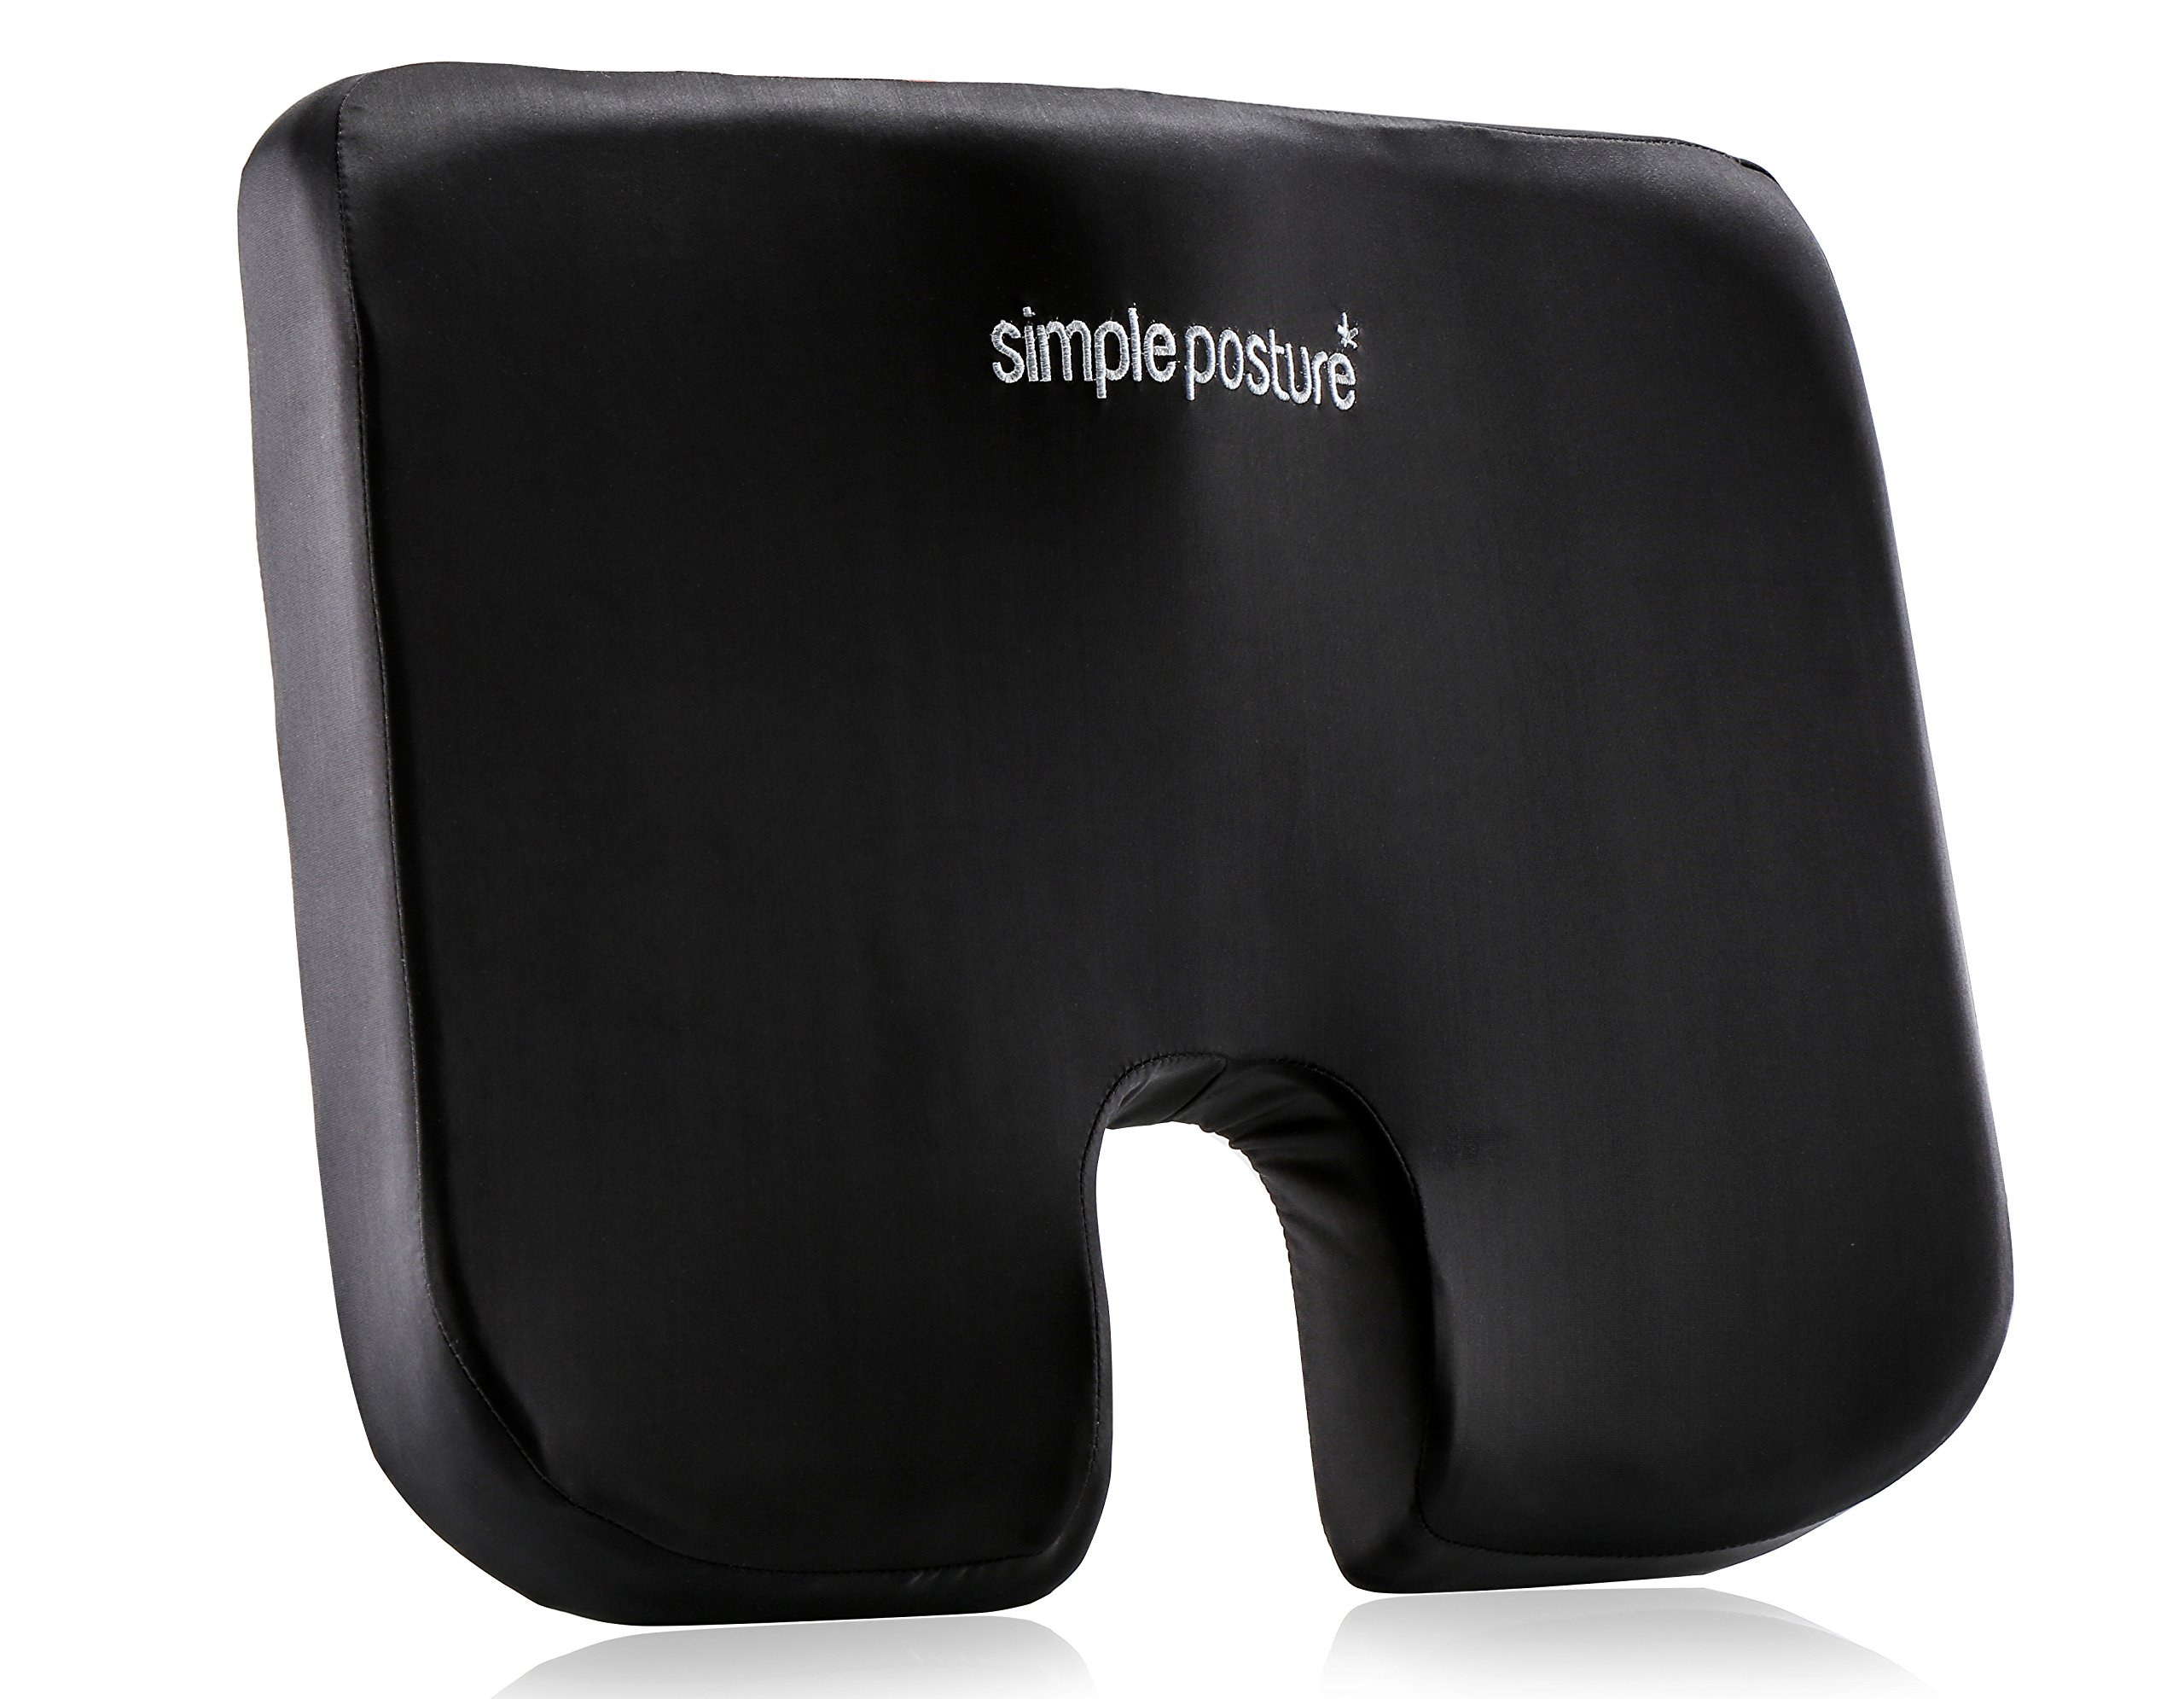 SimplePosture uSeat™ - Tailbone Cushion - Memory Foam Coccyx Cushion Custom Designed For Immediate Tailbone & Lower Back Pain Relief - Now With Improved Ergonomics & Upgraded Memory Foam by Bert